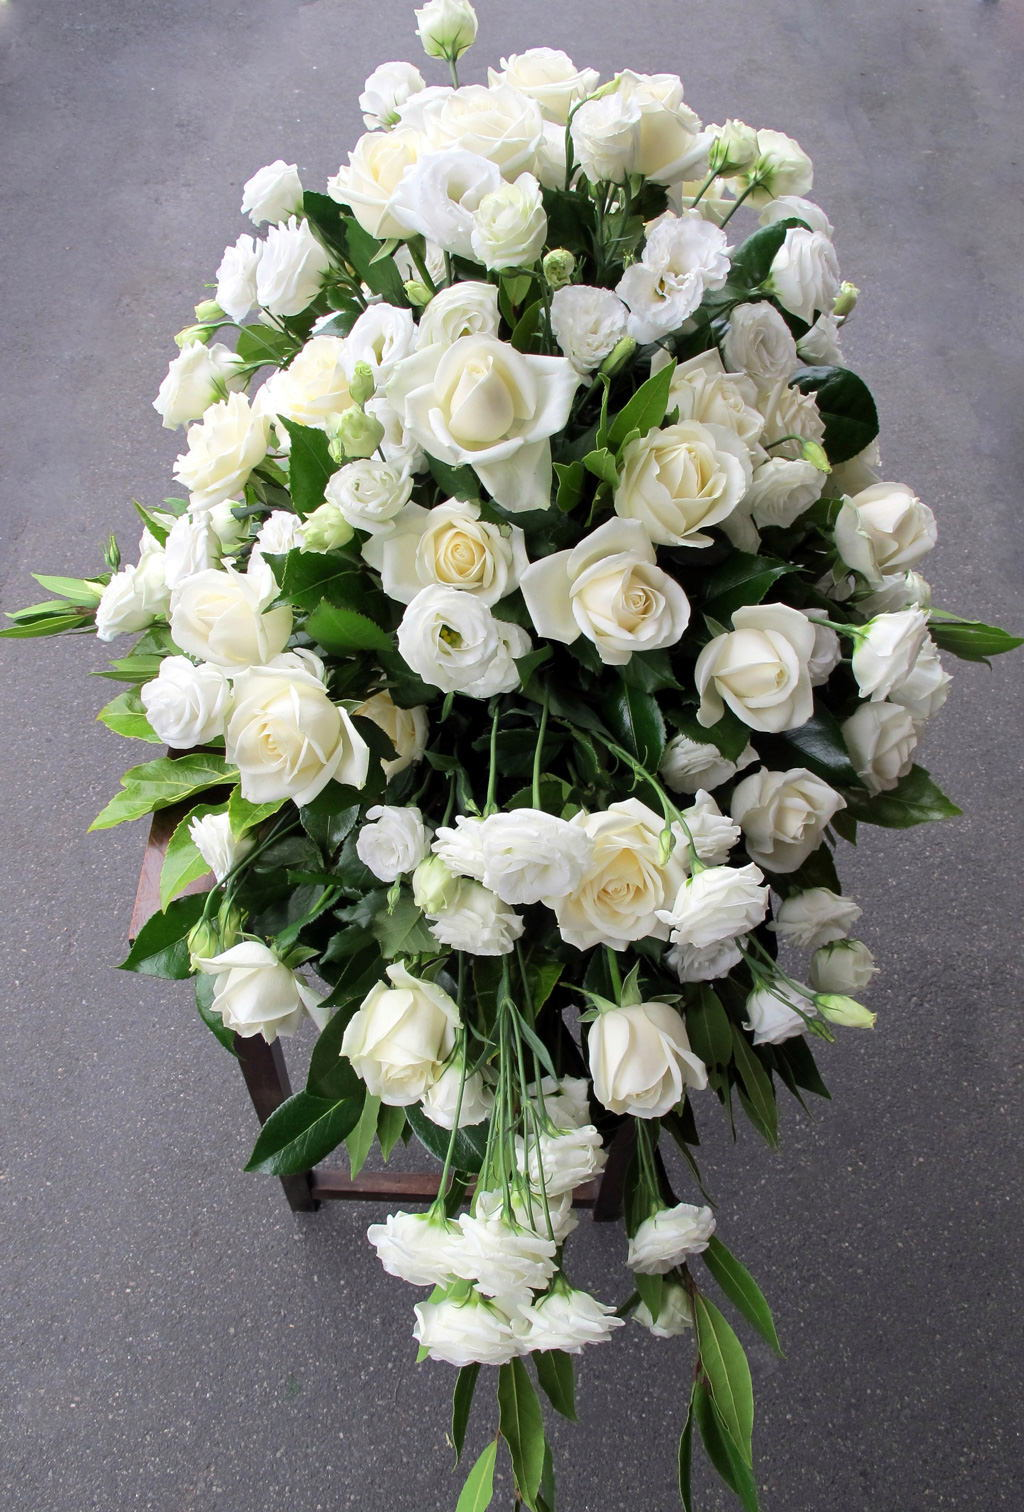 Funerals beautiful casket arrangements estelle flowers dunedin nz we can deliver sympathy bouquets in dunedin and surrounding areas please contact us or order through our online shop izmirmasajfo